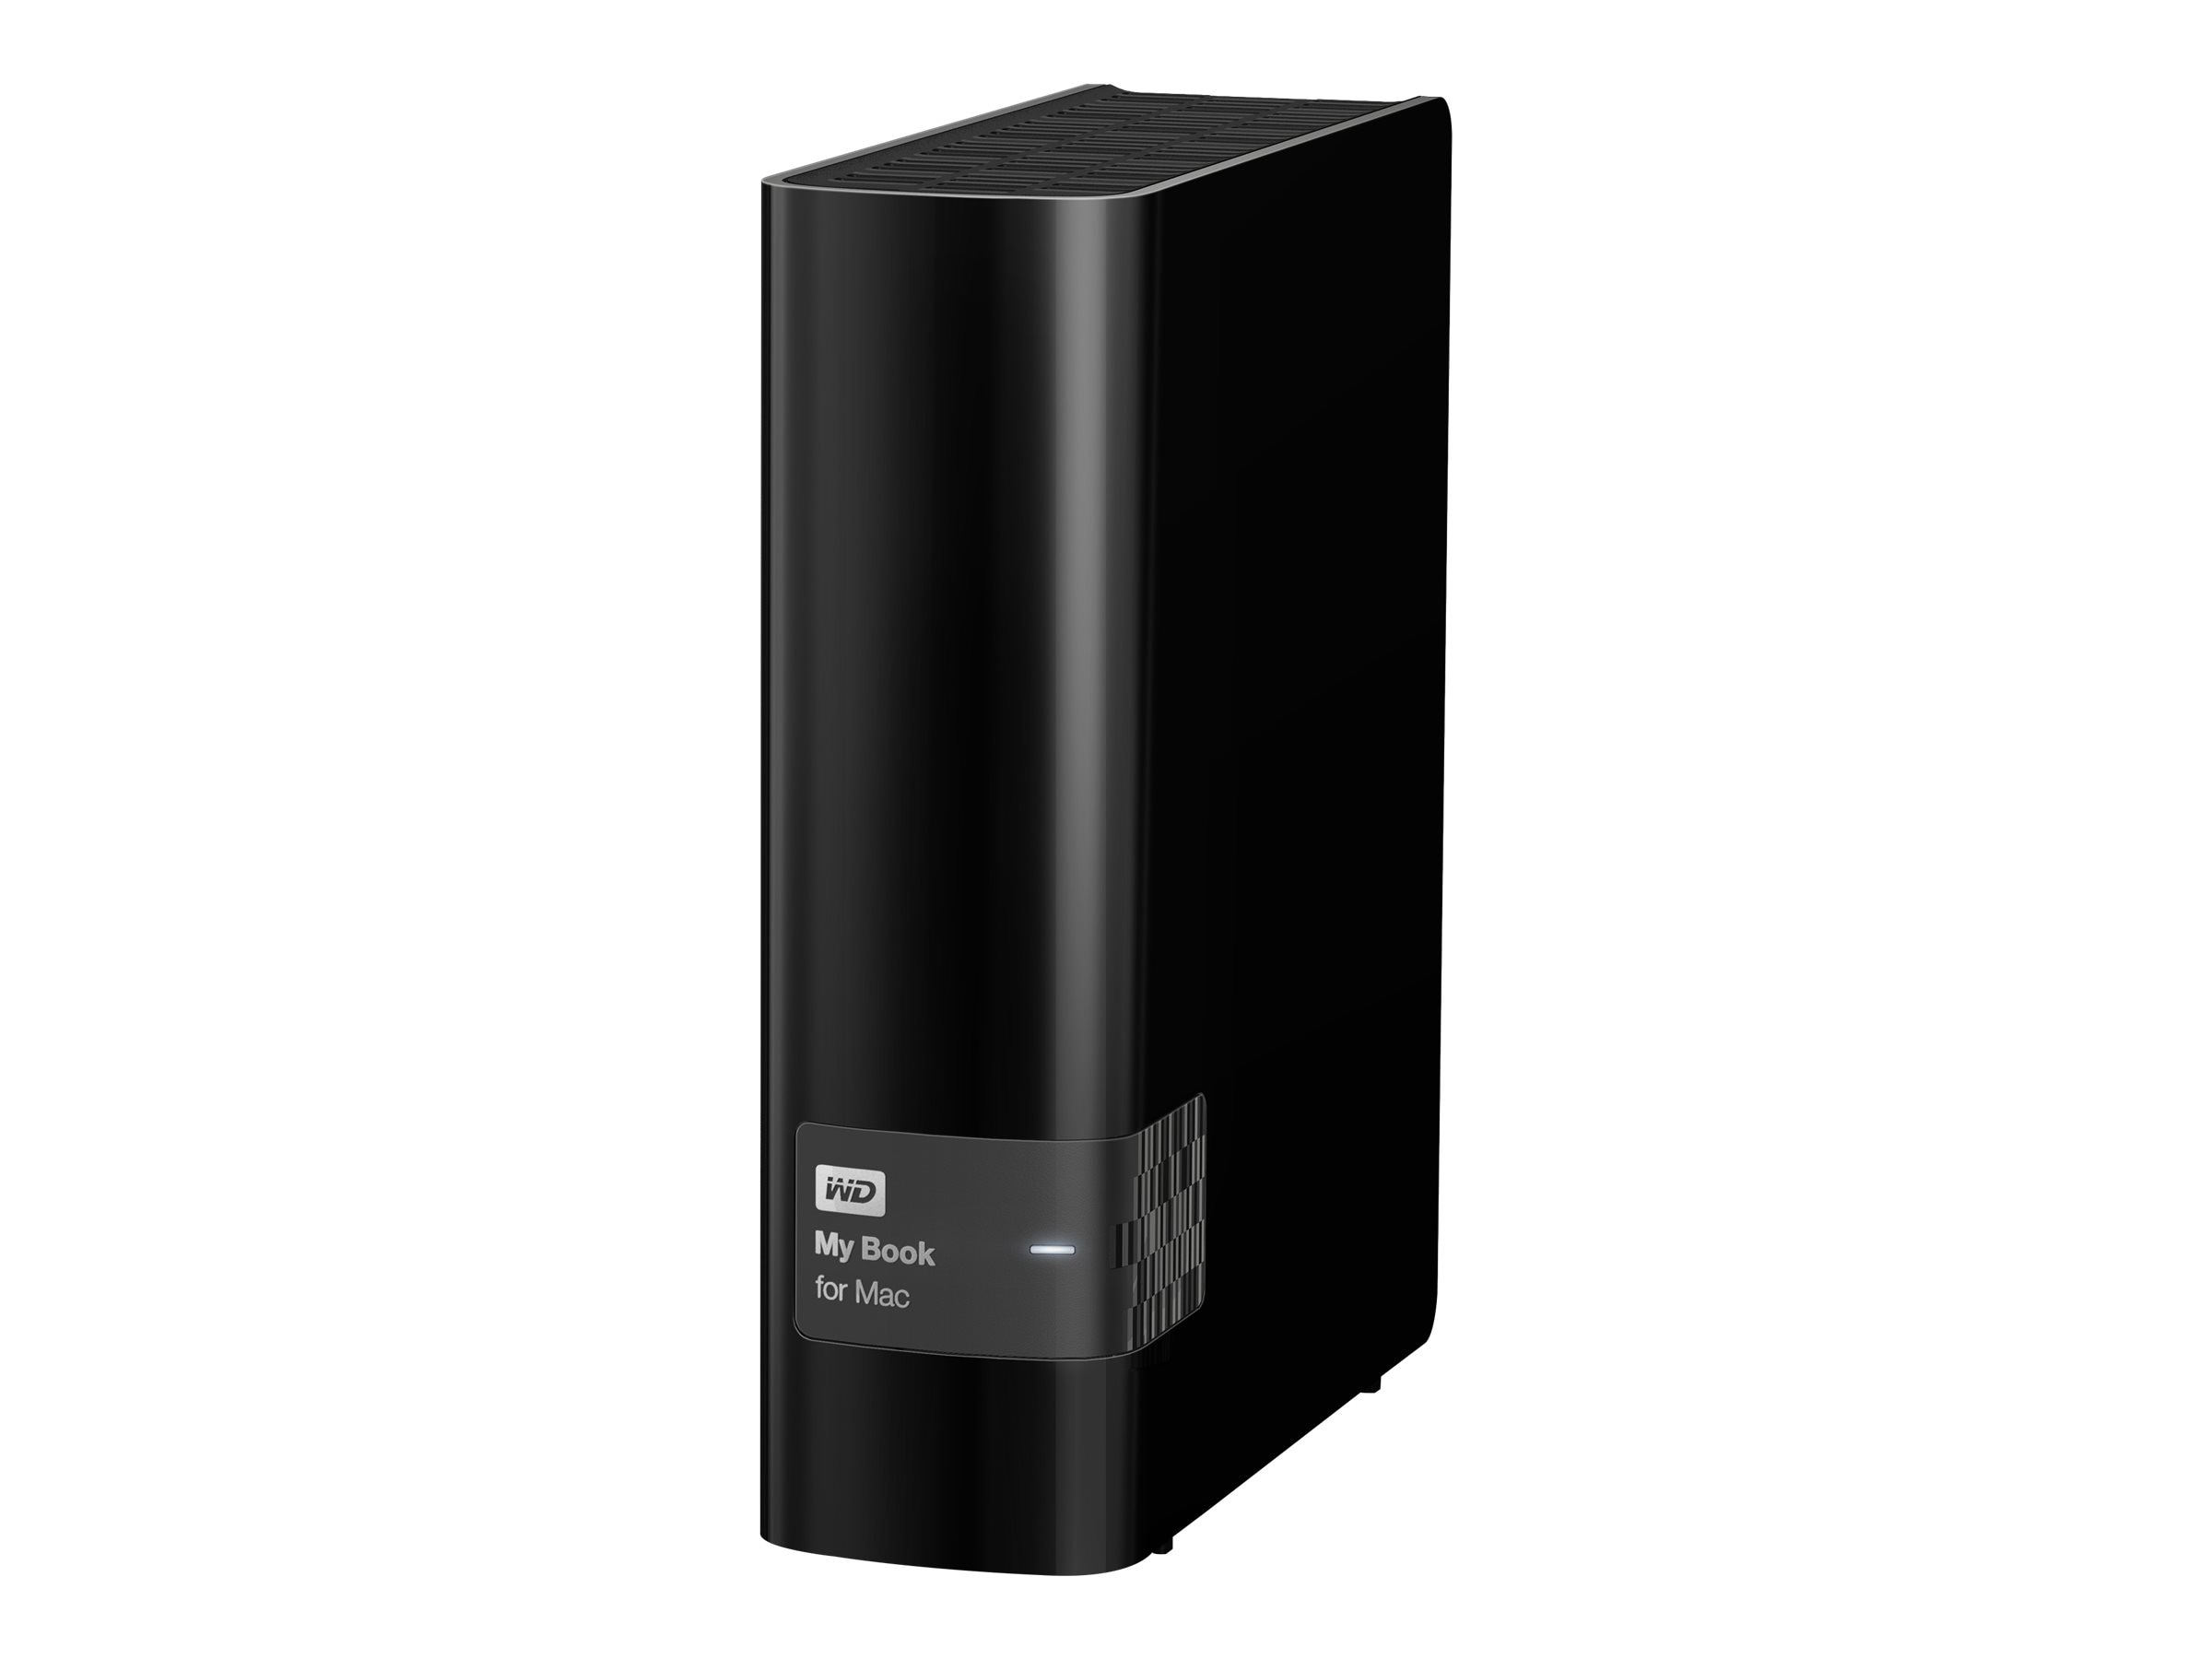 WD 4TB My Book for Mac USB 3.0 External Hard Drive, WDBYCC0040HBK-NESN